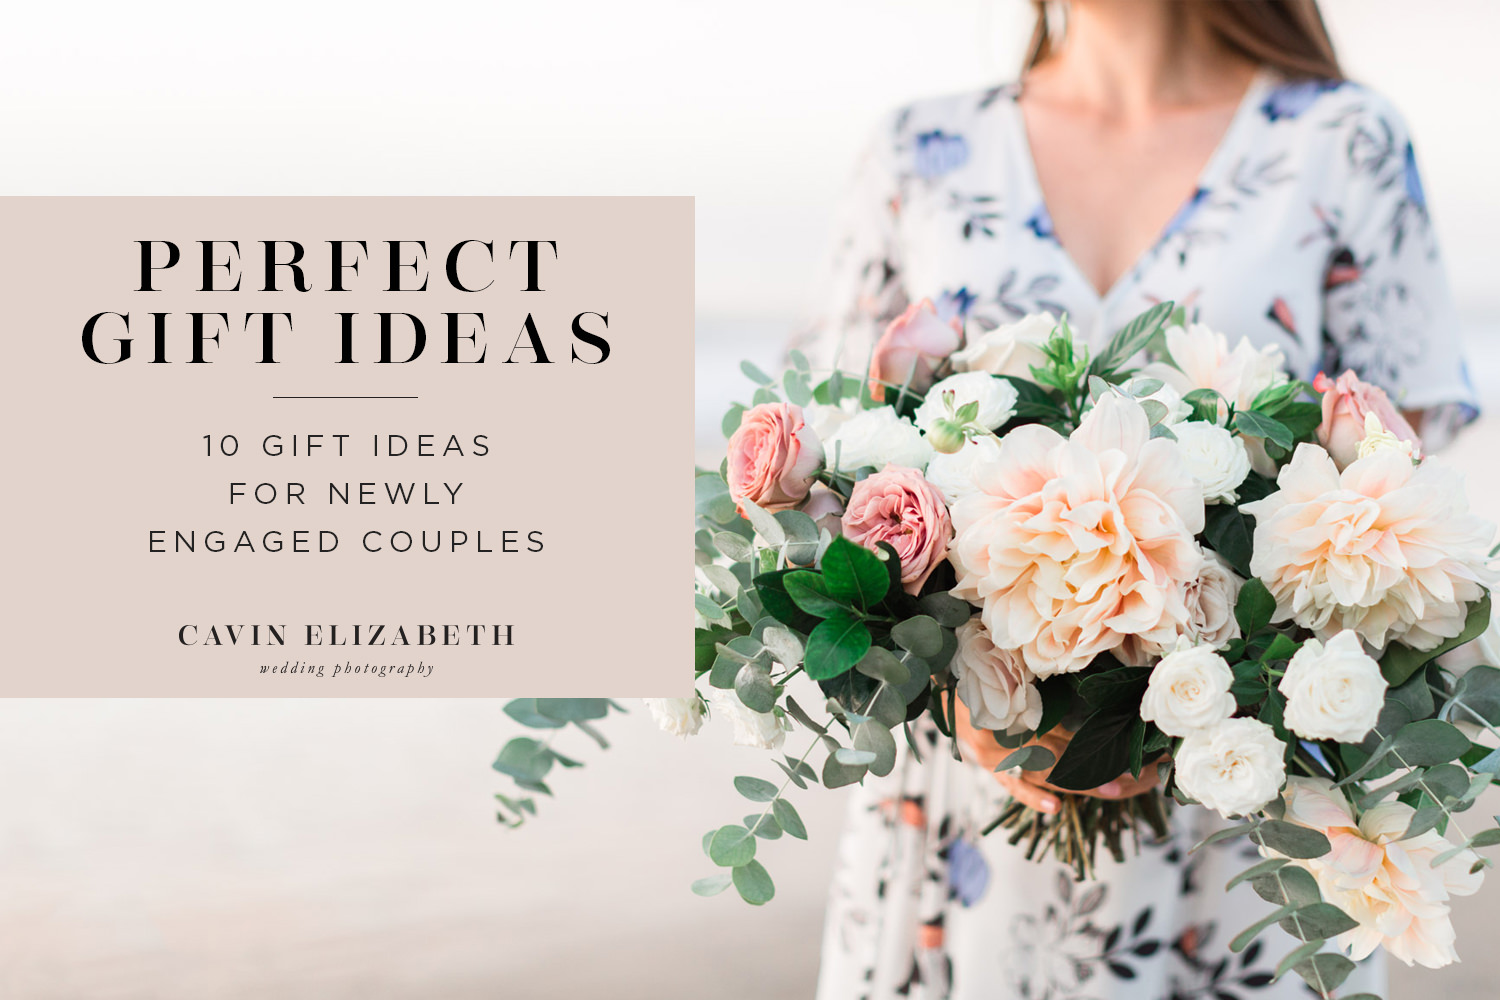 Wedding Gift For A Couple: 10 Ideas For Wedding Gifts For Newly Engaged Couples In 2018